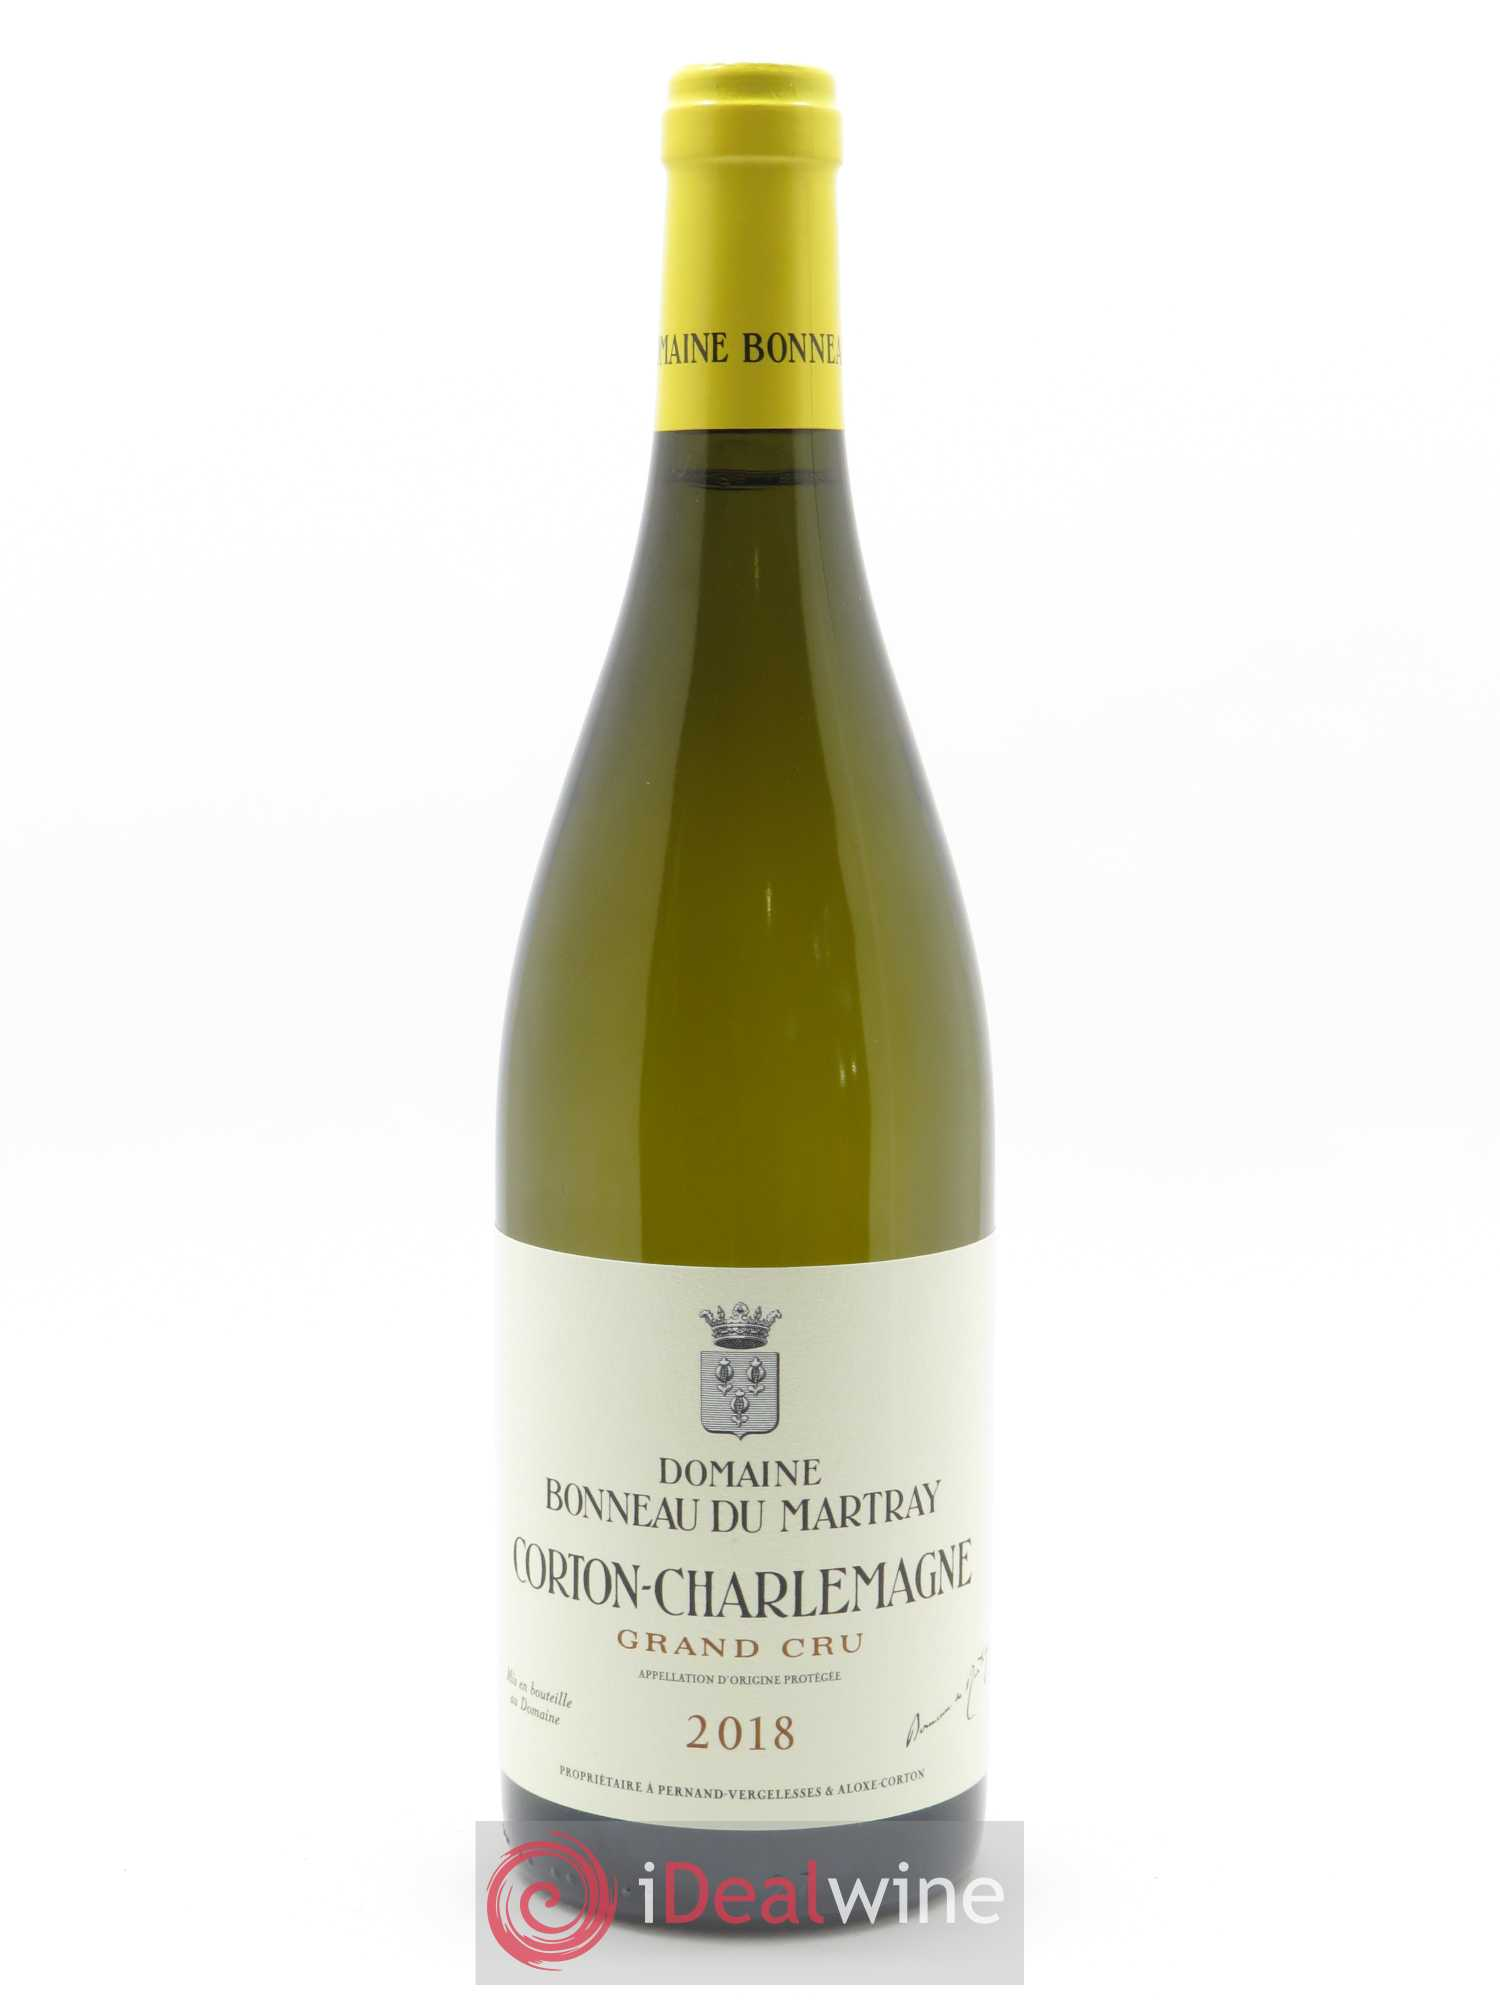 Corton-Charlemagne Grand Cru Bonneau du Martray (Domaine)